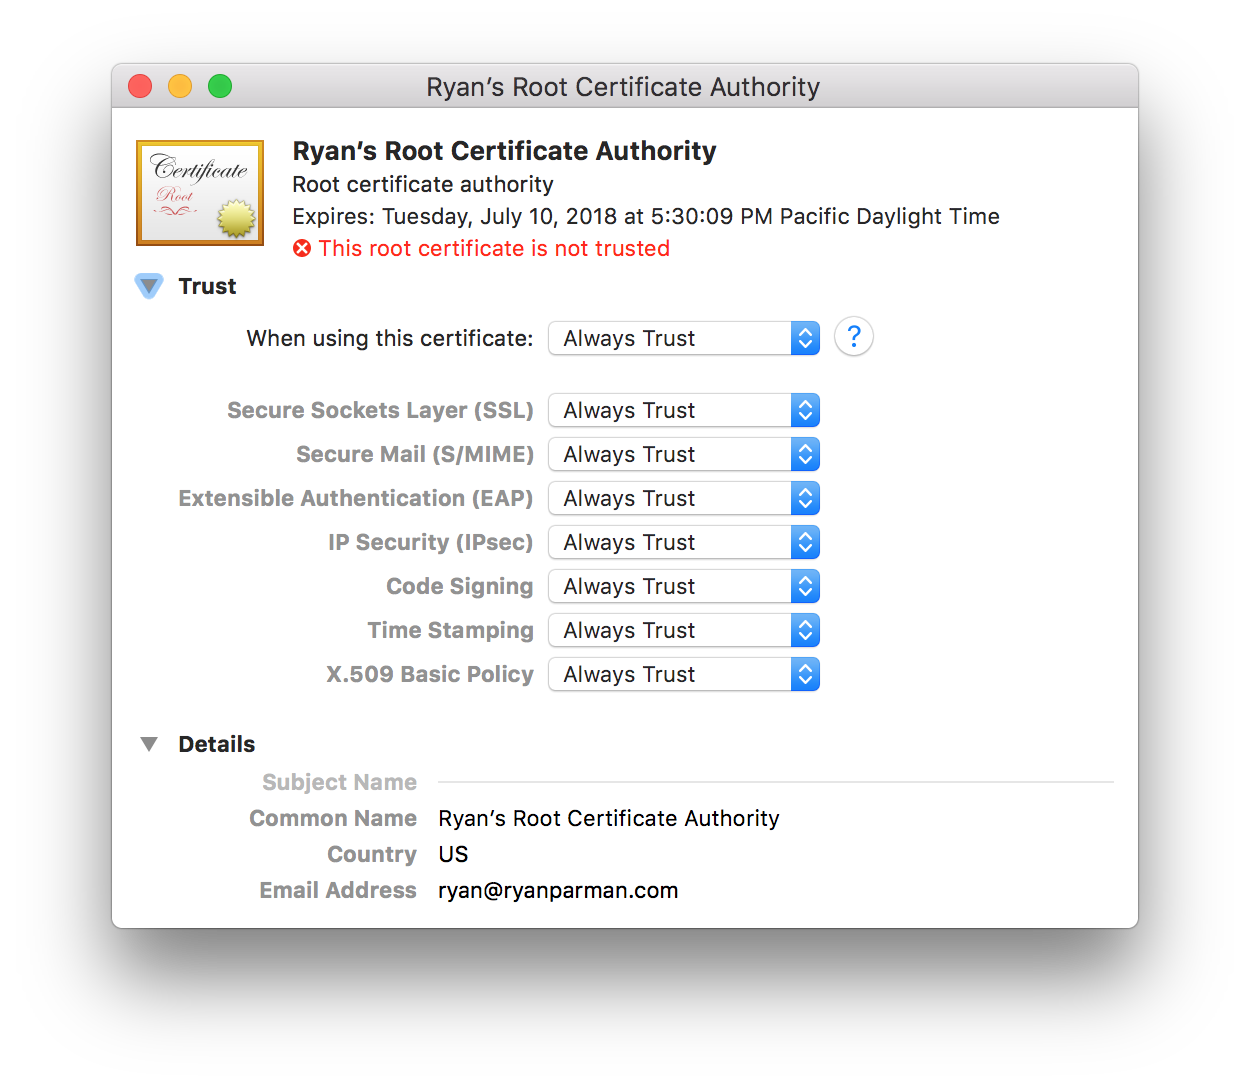 Trust options for Certificate Authority